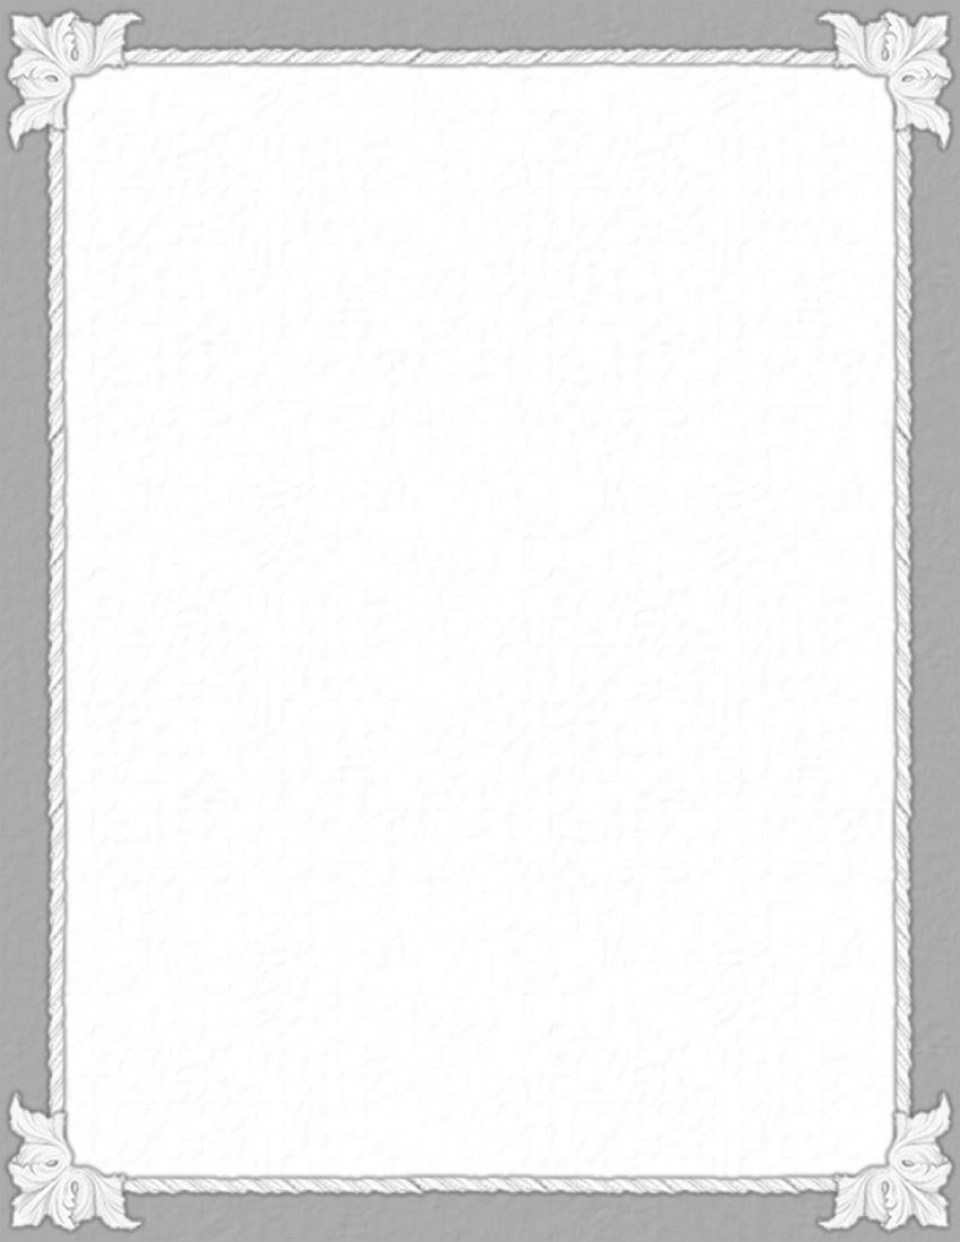 020 Free Printable Elegant Stationery Templates Letterhead Template - Free Printable Elegant Stationery